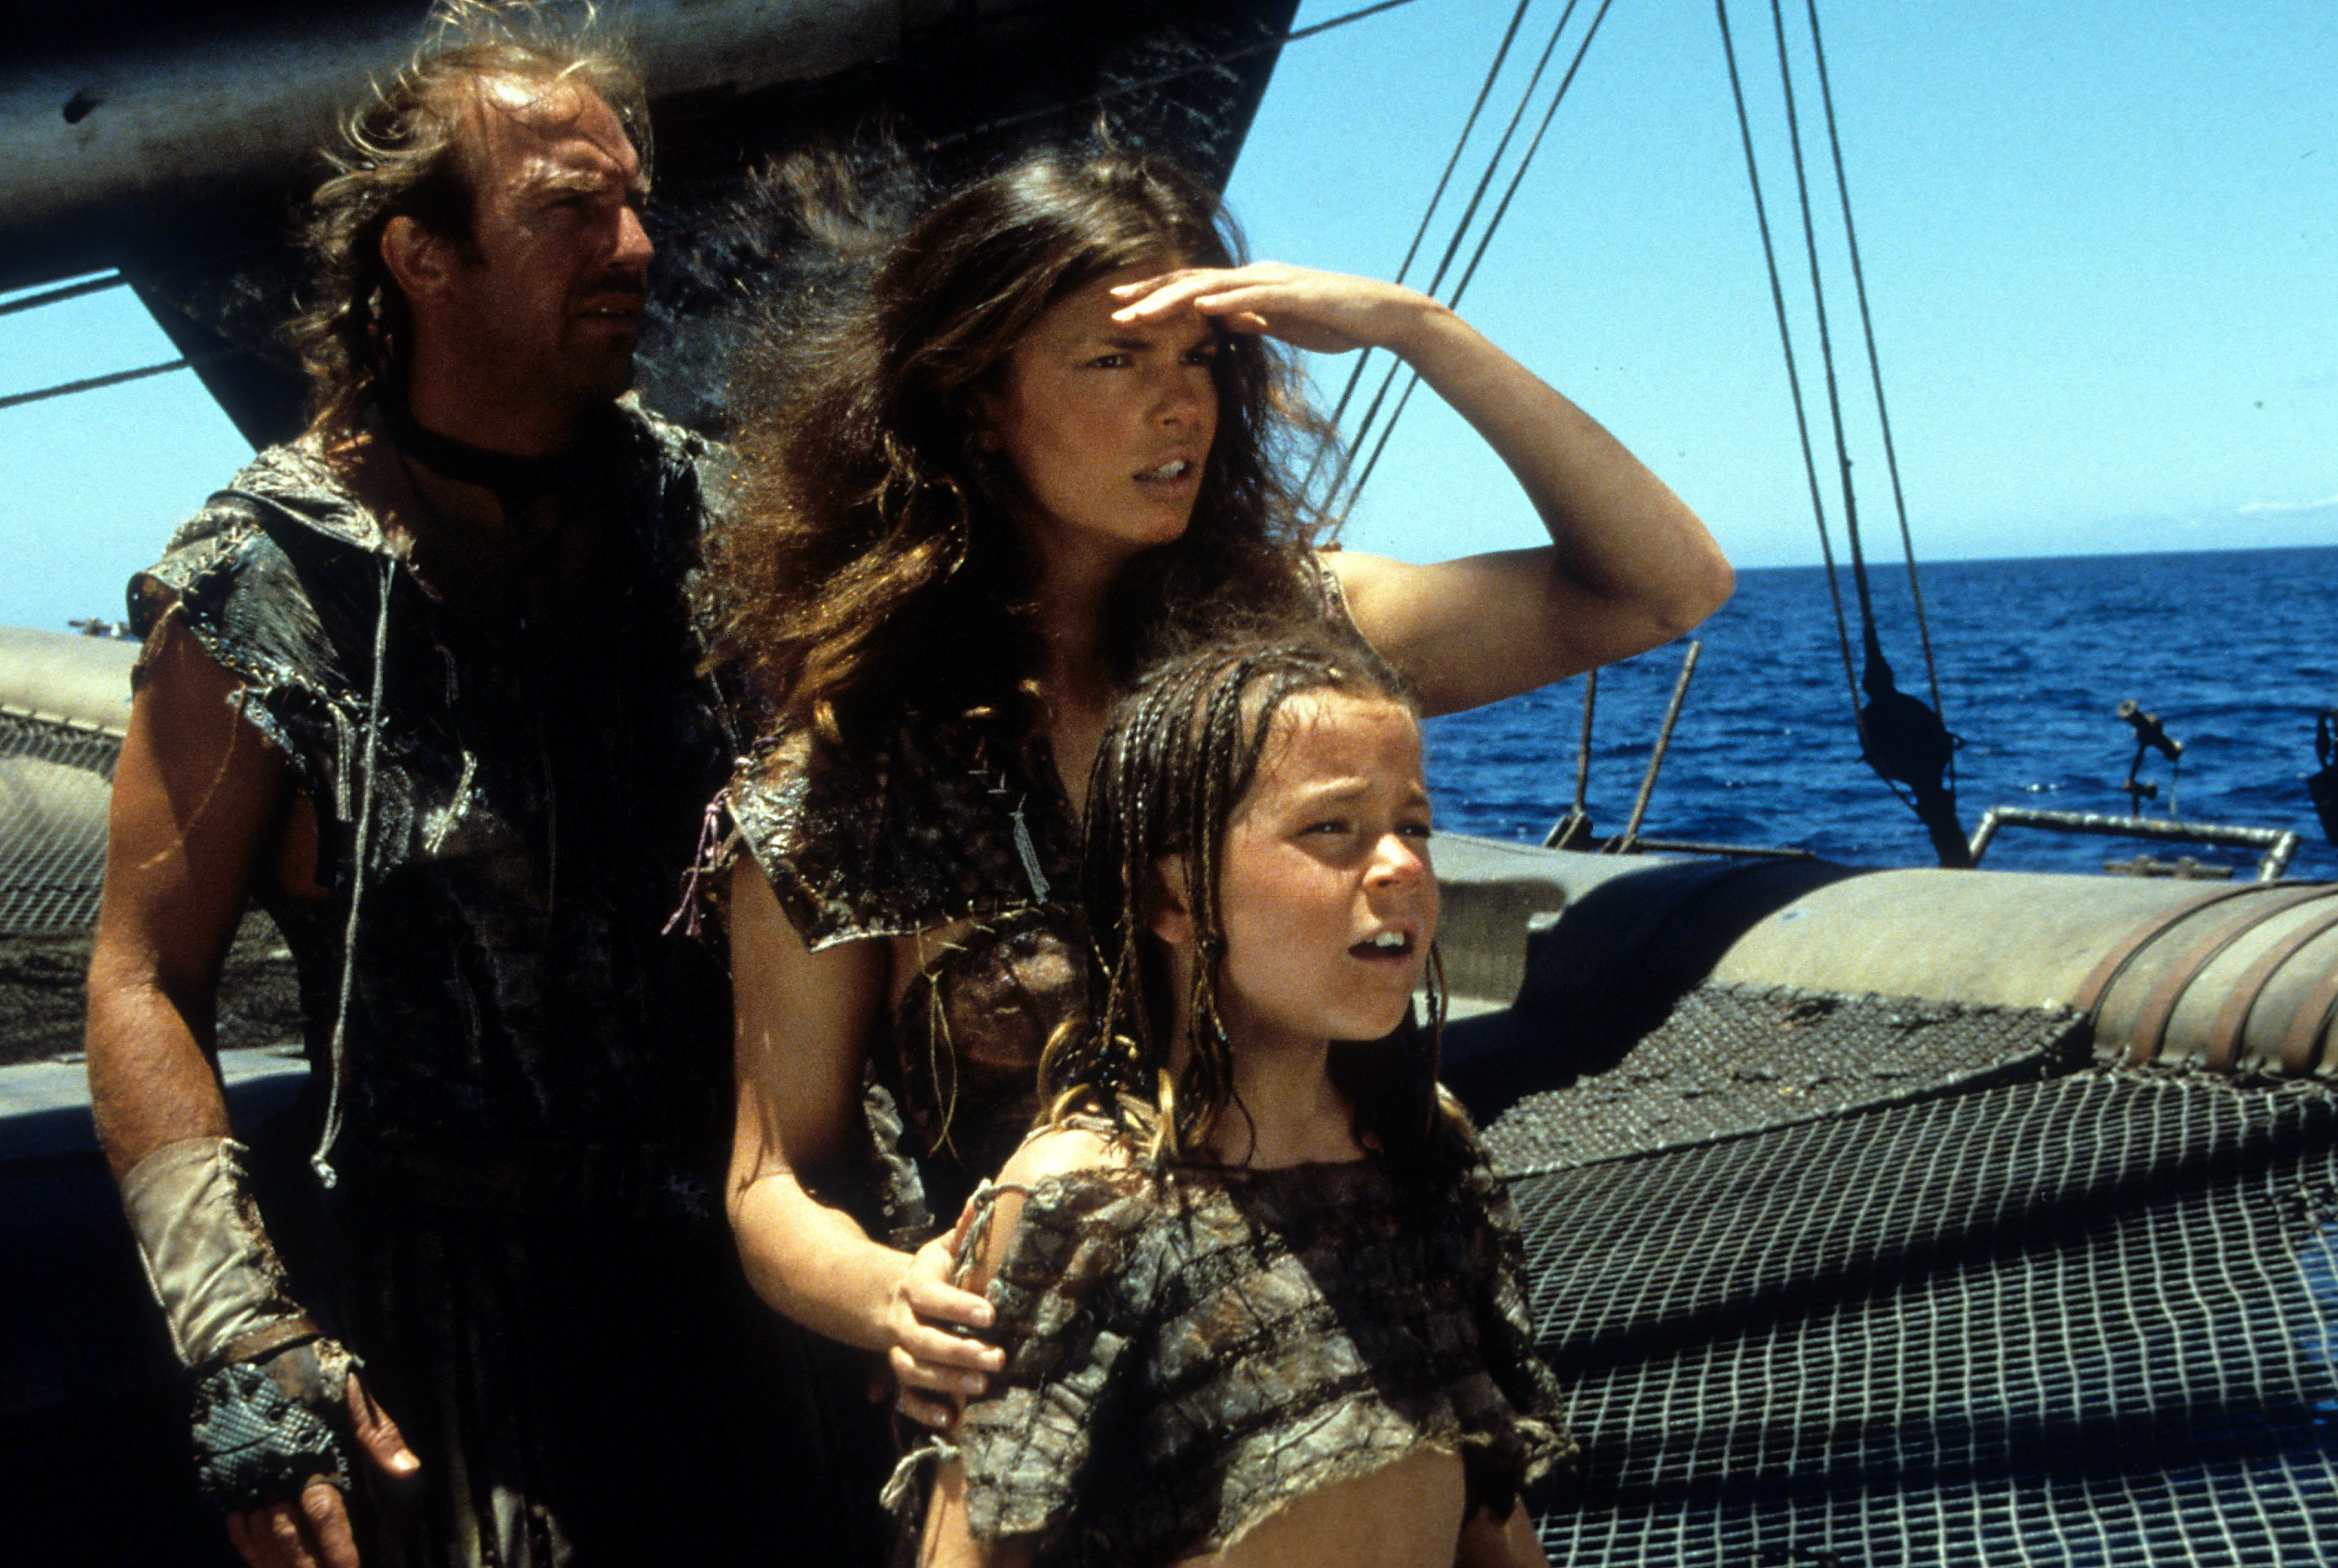 Kevin Costner, Jeanne Tripplehorn and Tina Majorino look to the horizon in a scene from the film 'Waterworld', 1995. | Source: Getty Images